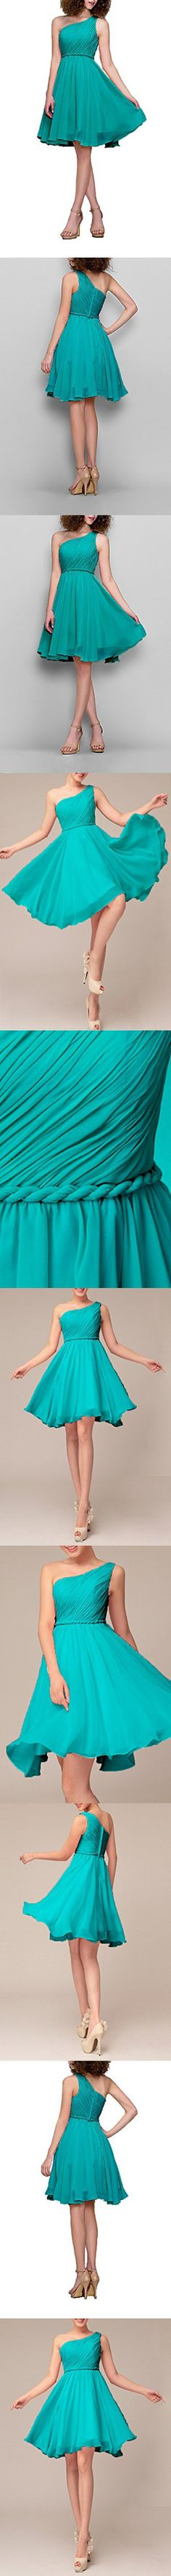 Formal Homecoming Dress One Shoulder Pleated Chiffon A-line Short Bridesmaid Dress, Color Turquoise ,2